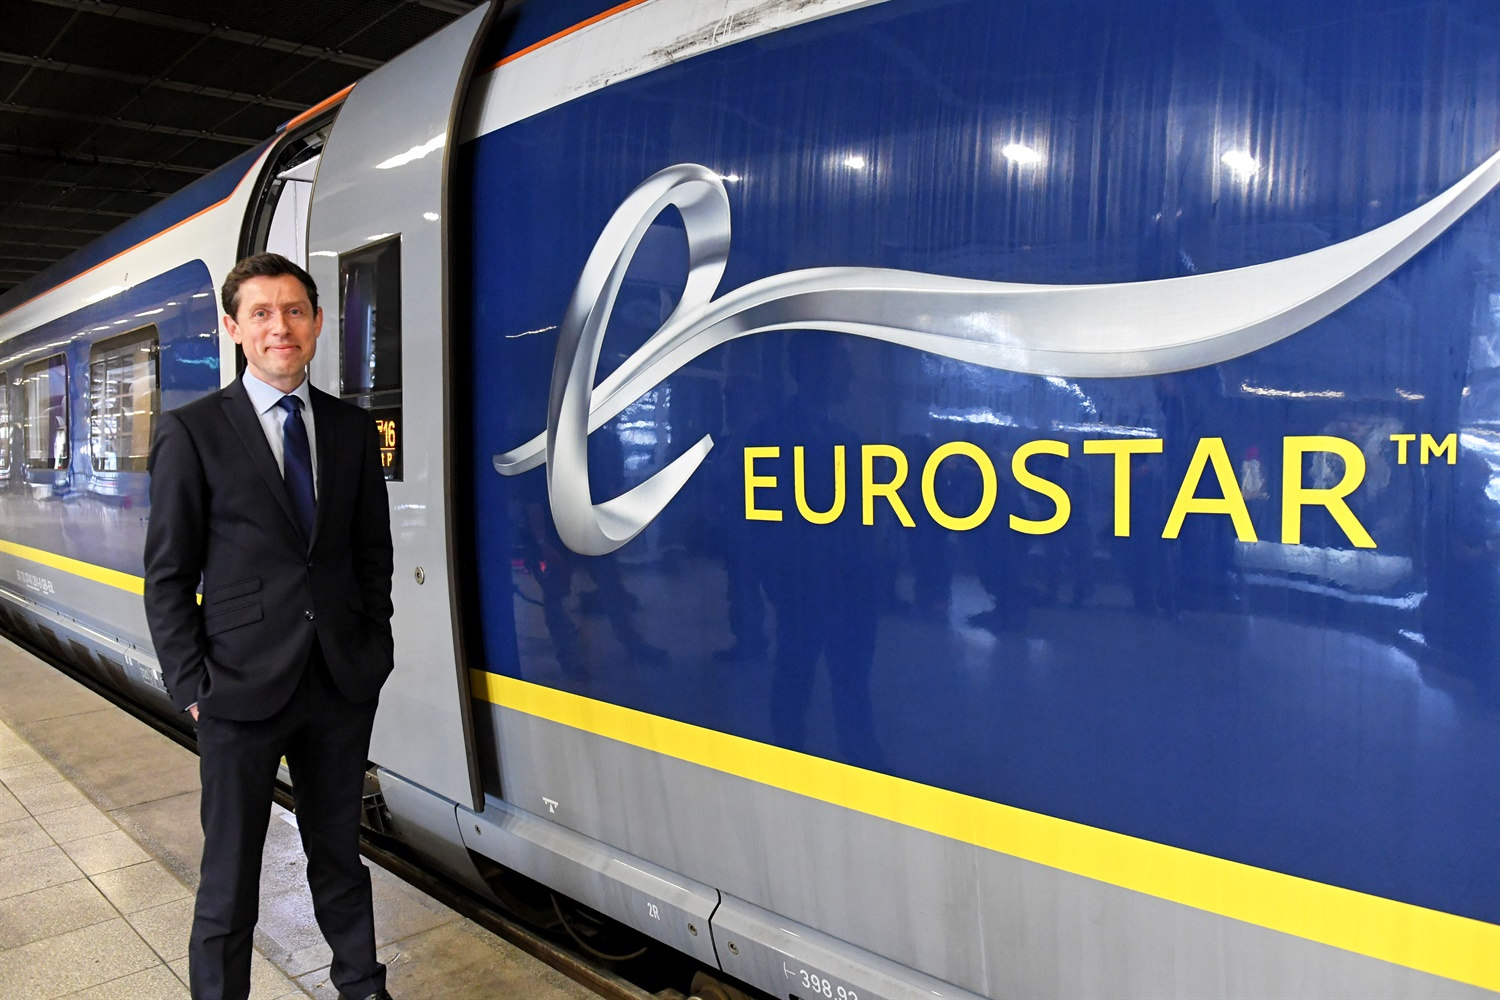 Eurostar introduces new e320 trains on London-Brussels route